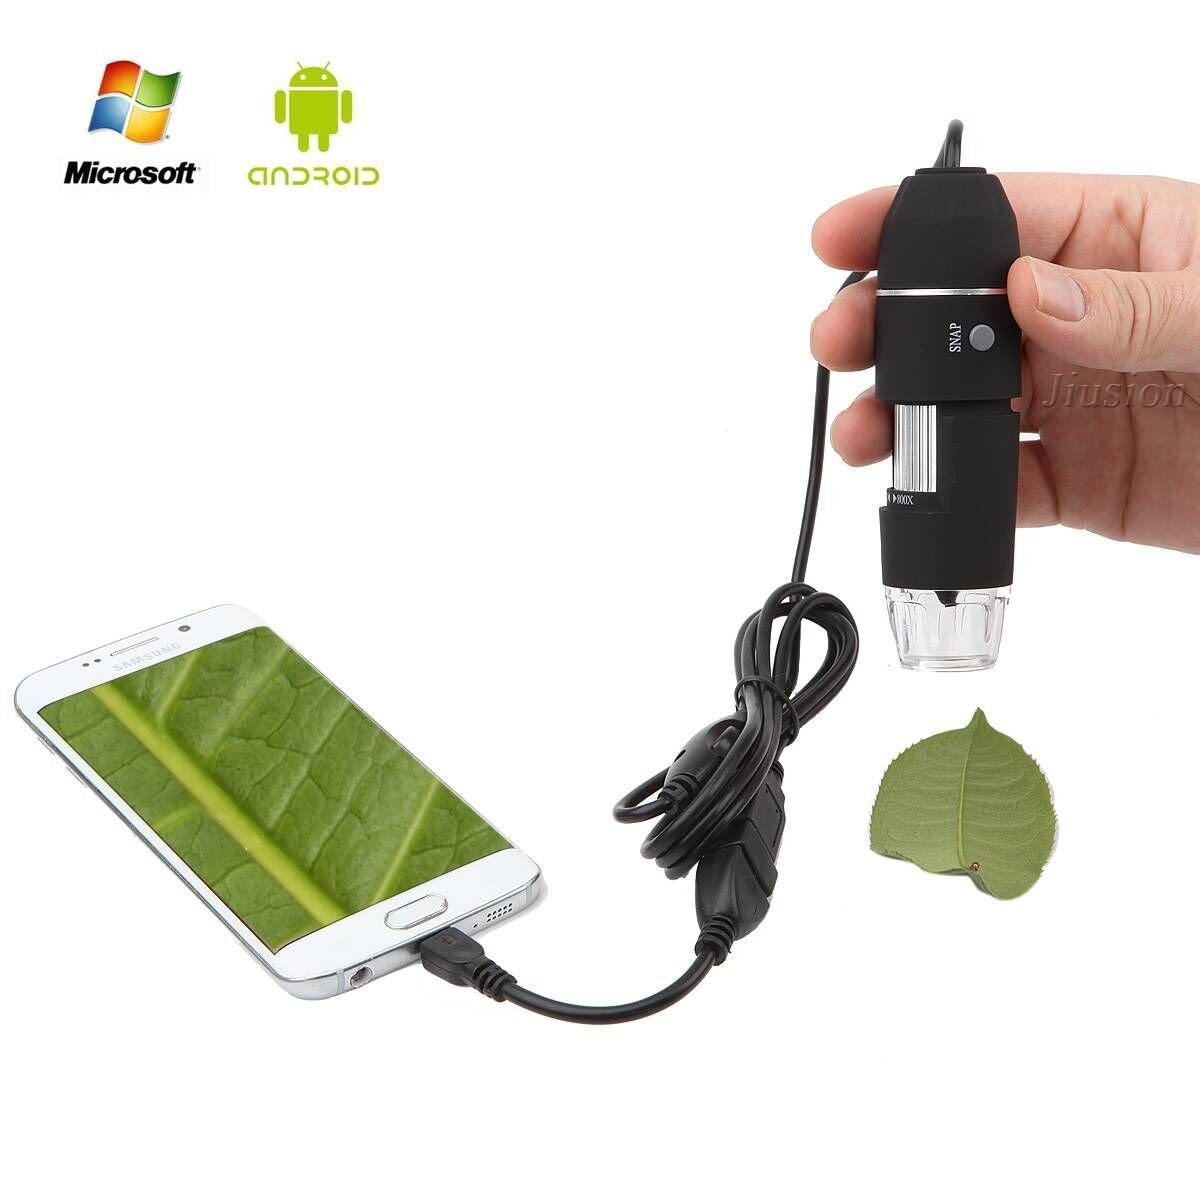 500x 800x 1000x USB Digital Microscope Macchina Fotografica Portatile di Ingrandimento Endoscopio OTG Supporto per Samsung Android Windows Mobile Mac